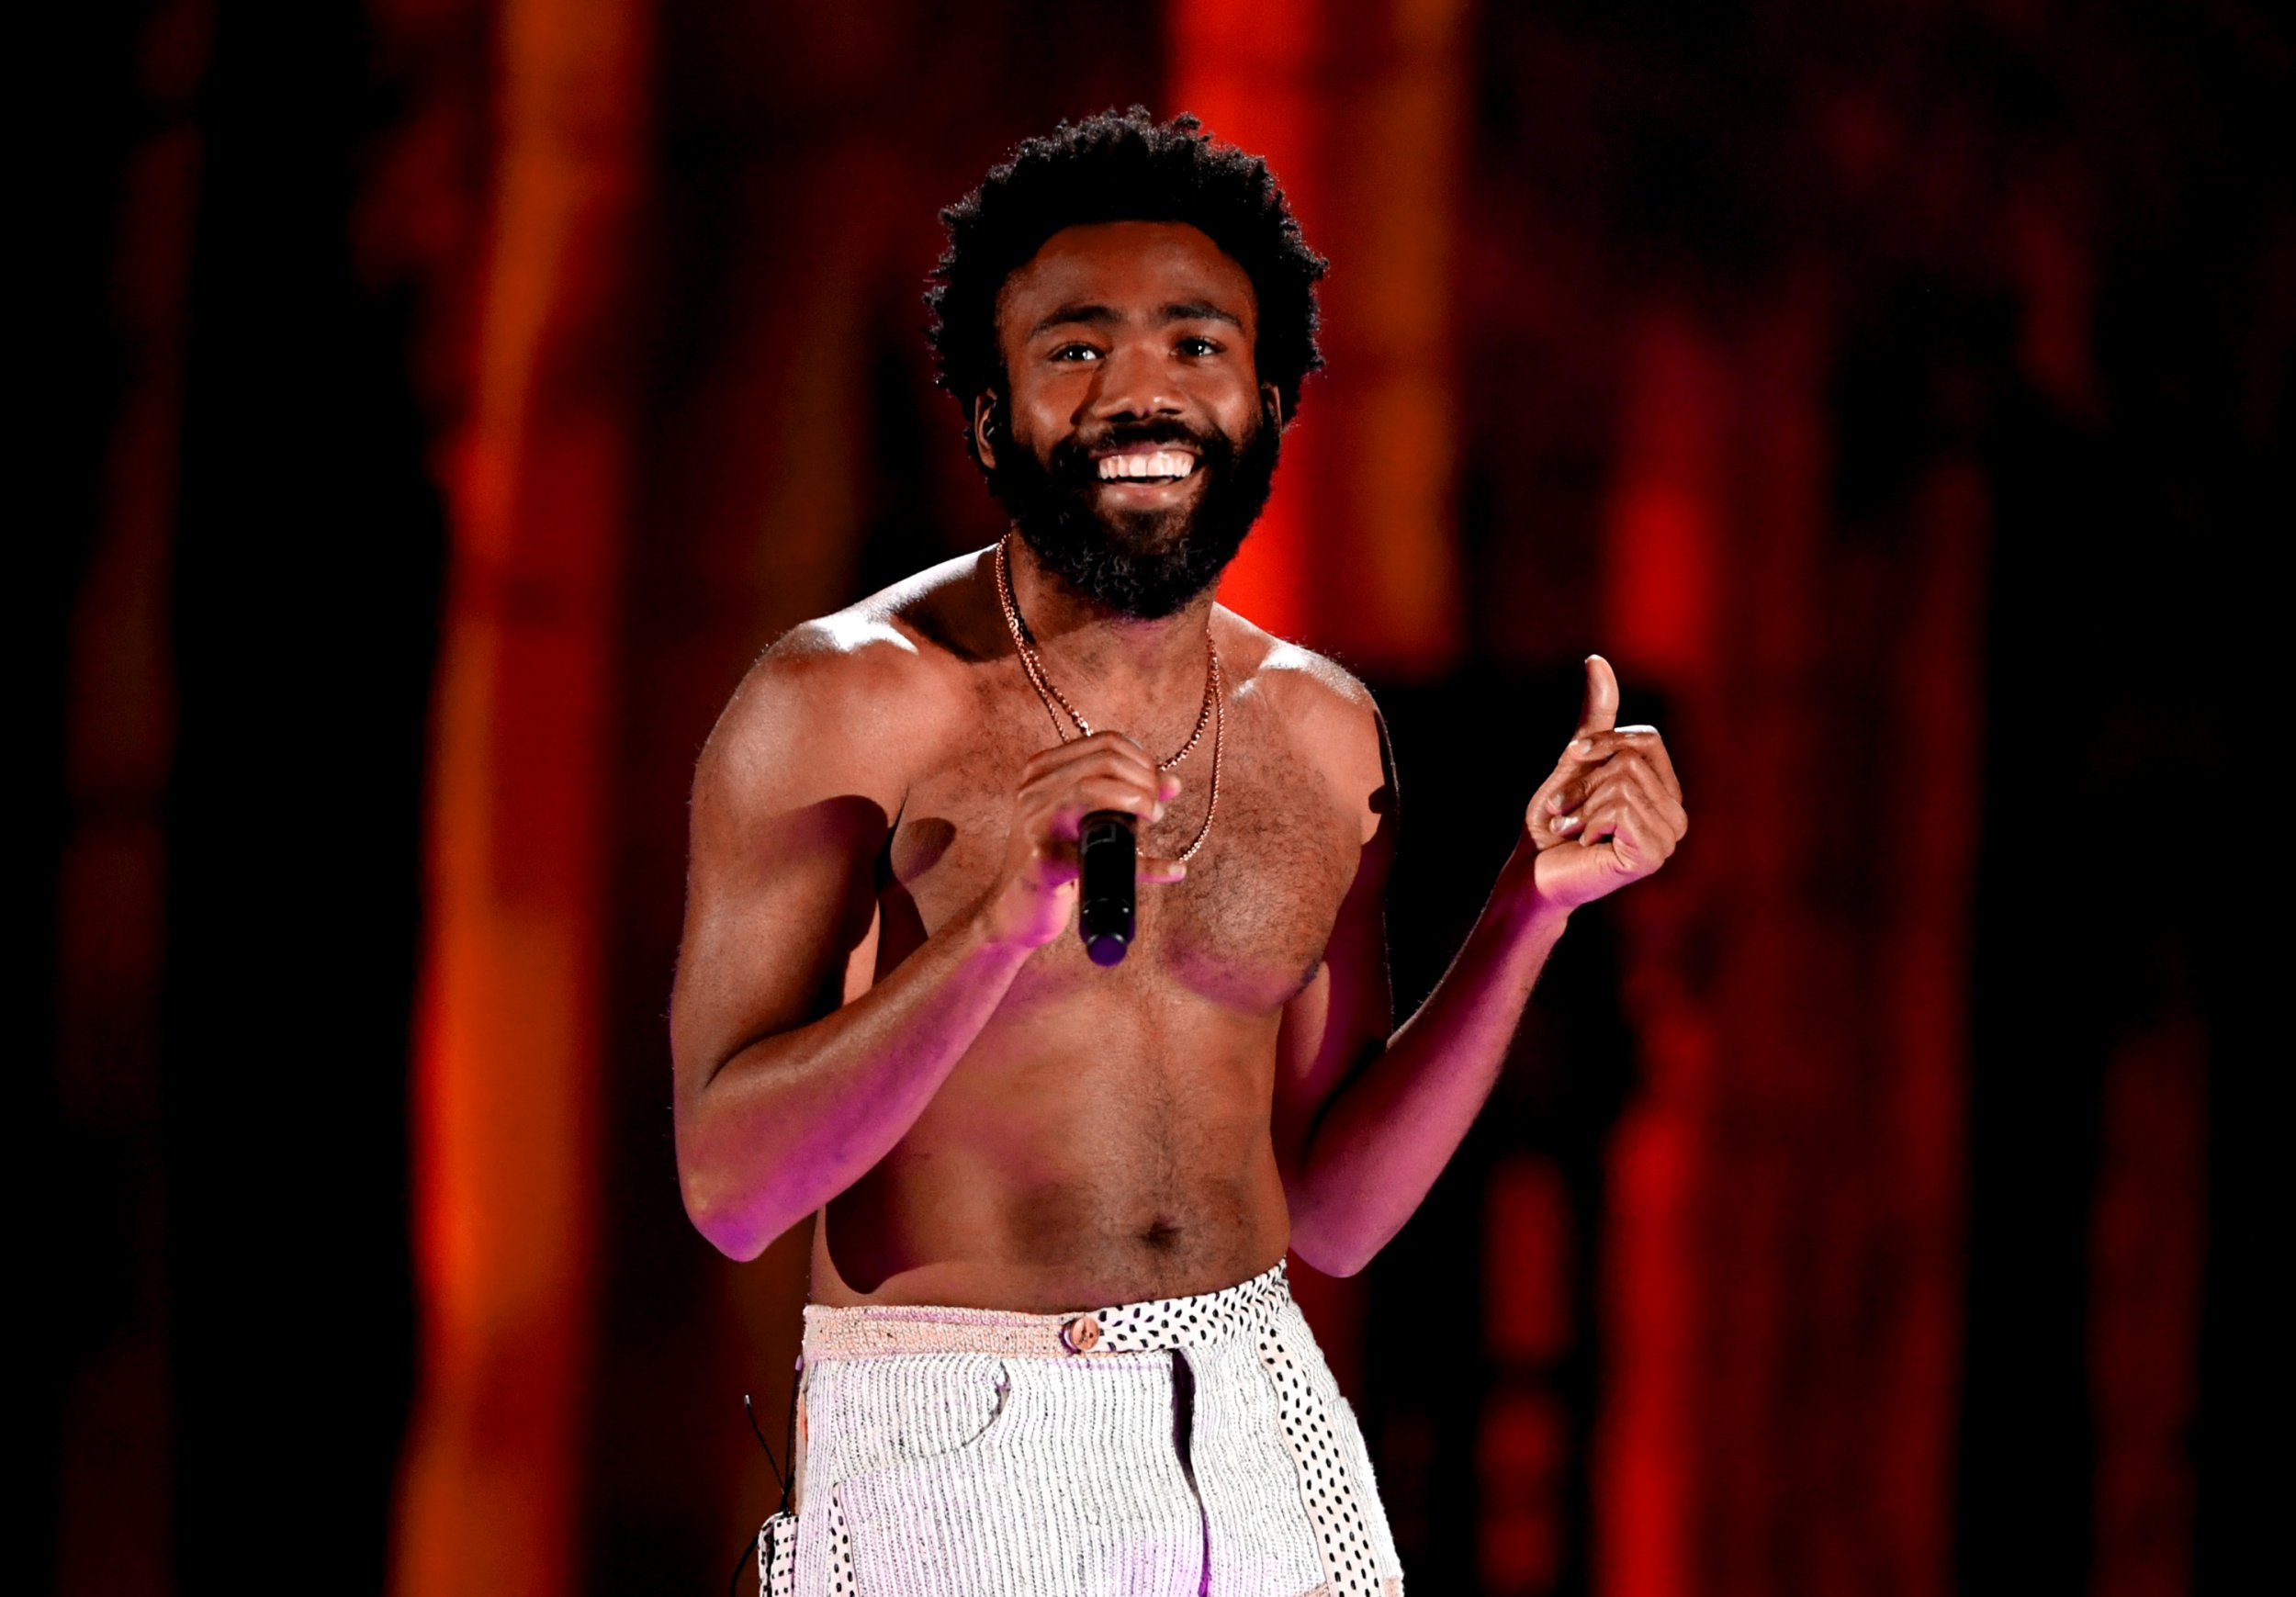 LAS VEGAS, NV - SEPTEMBER 21: (EDITORIAL USE ONLY; NO COMMERCIAL USE) Childish Gambino performs onstage during the 2018 iHeartRadio Music Festival at T-Mobile Arena on September 21, 2018 in Las Vegas, Nevada. (Photo by Kevin Winter/Getty Images for iHeartMedia)